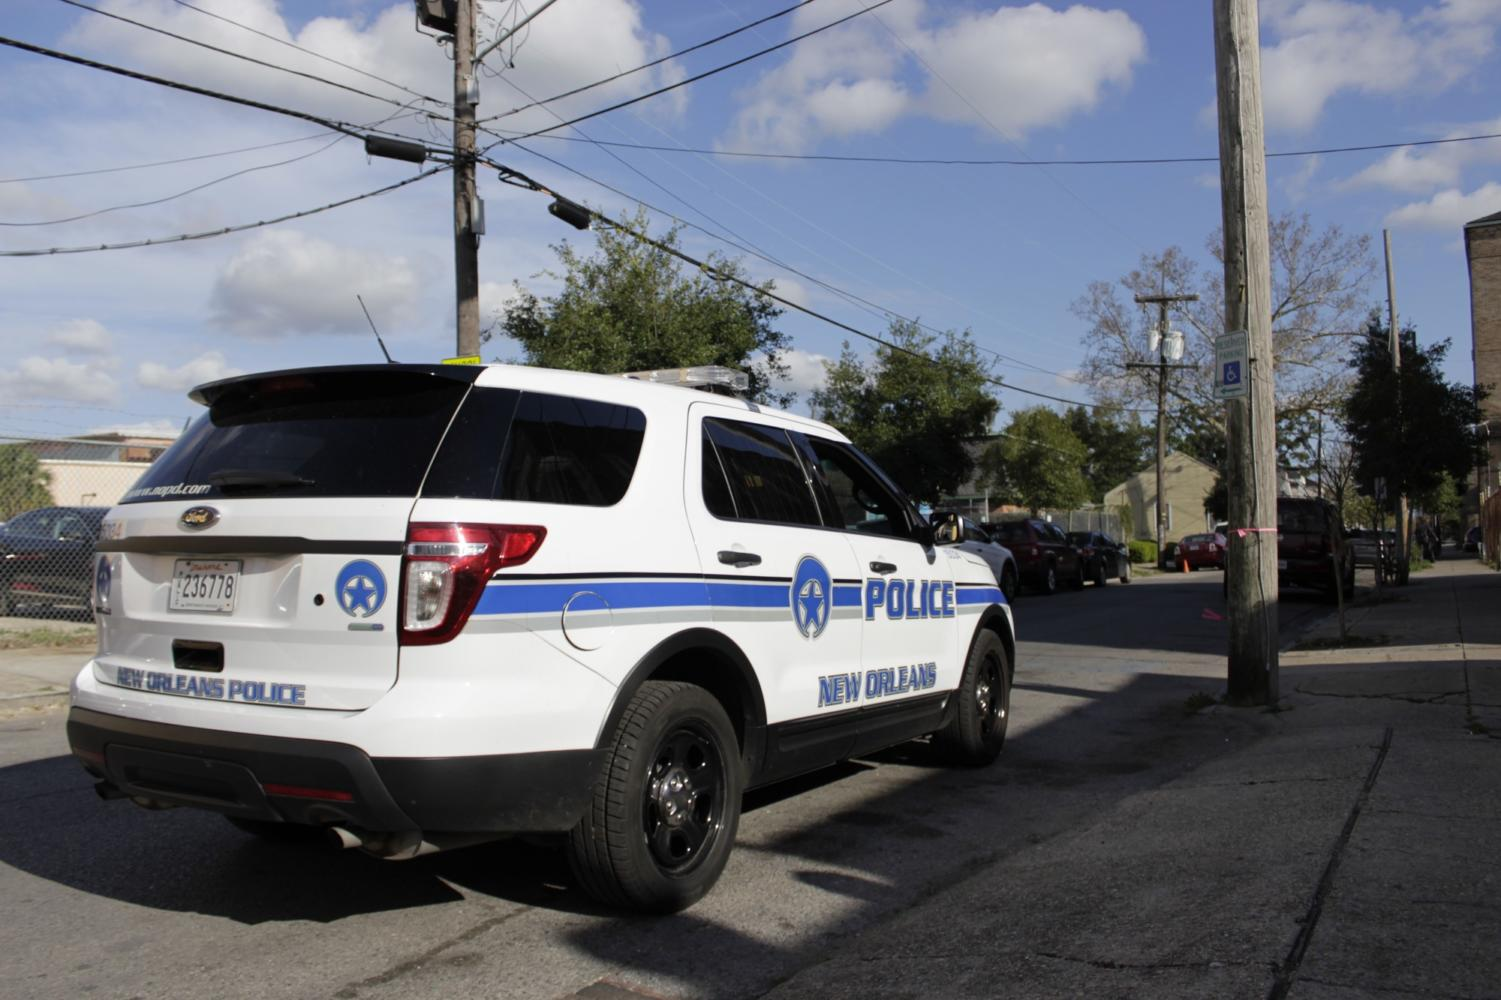 A New Orleans Police Department vehicle sits outside as an officer responds to a call in the Lower Garden District.  Police in the Uptown area are on high-alert as vehicle-related crimes have spiked up in recent months. Photo credit: John Casey